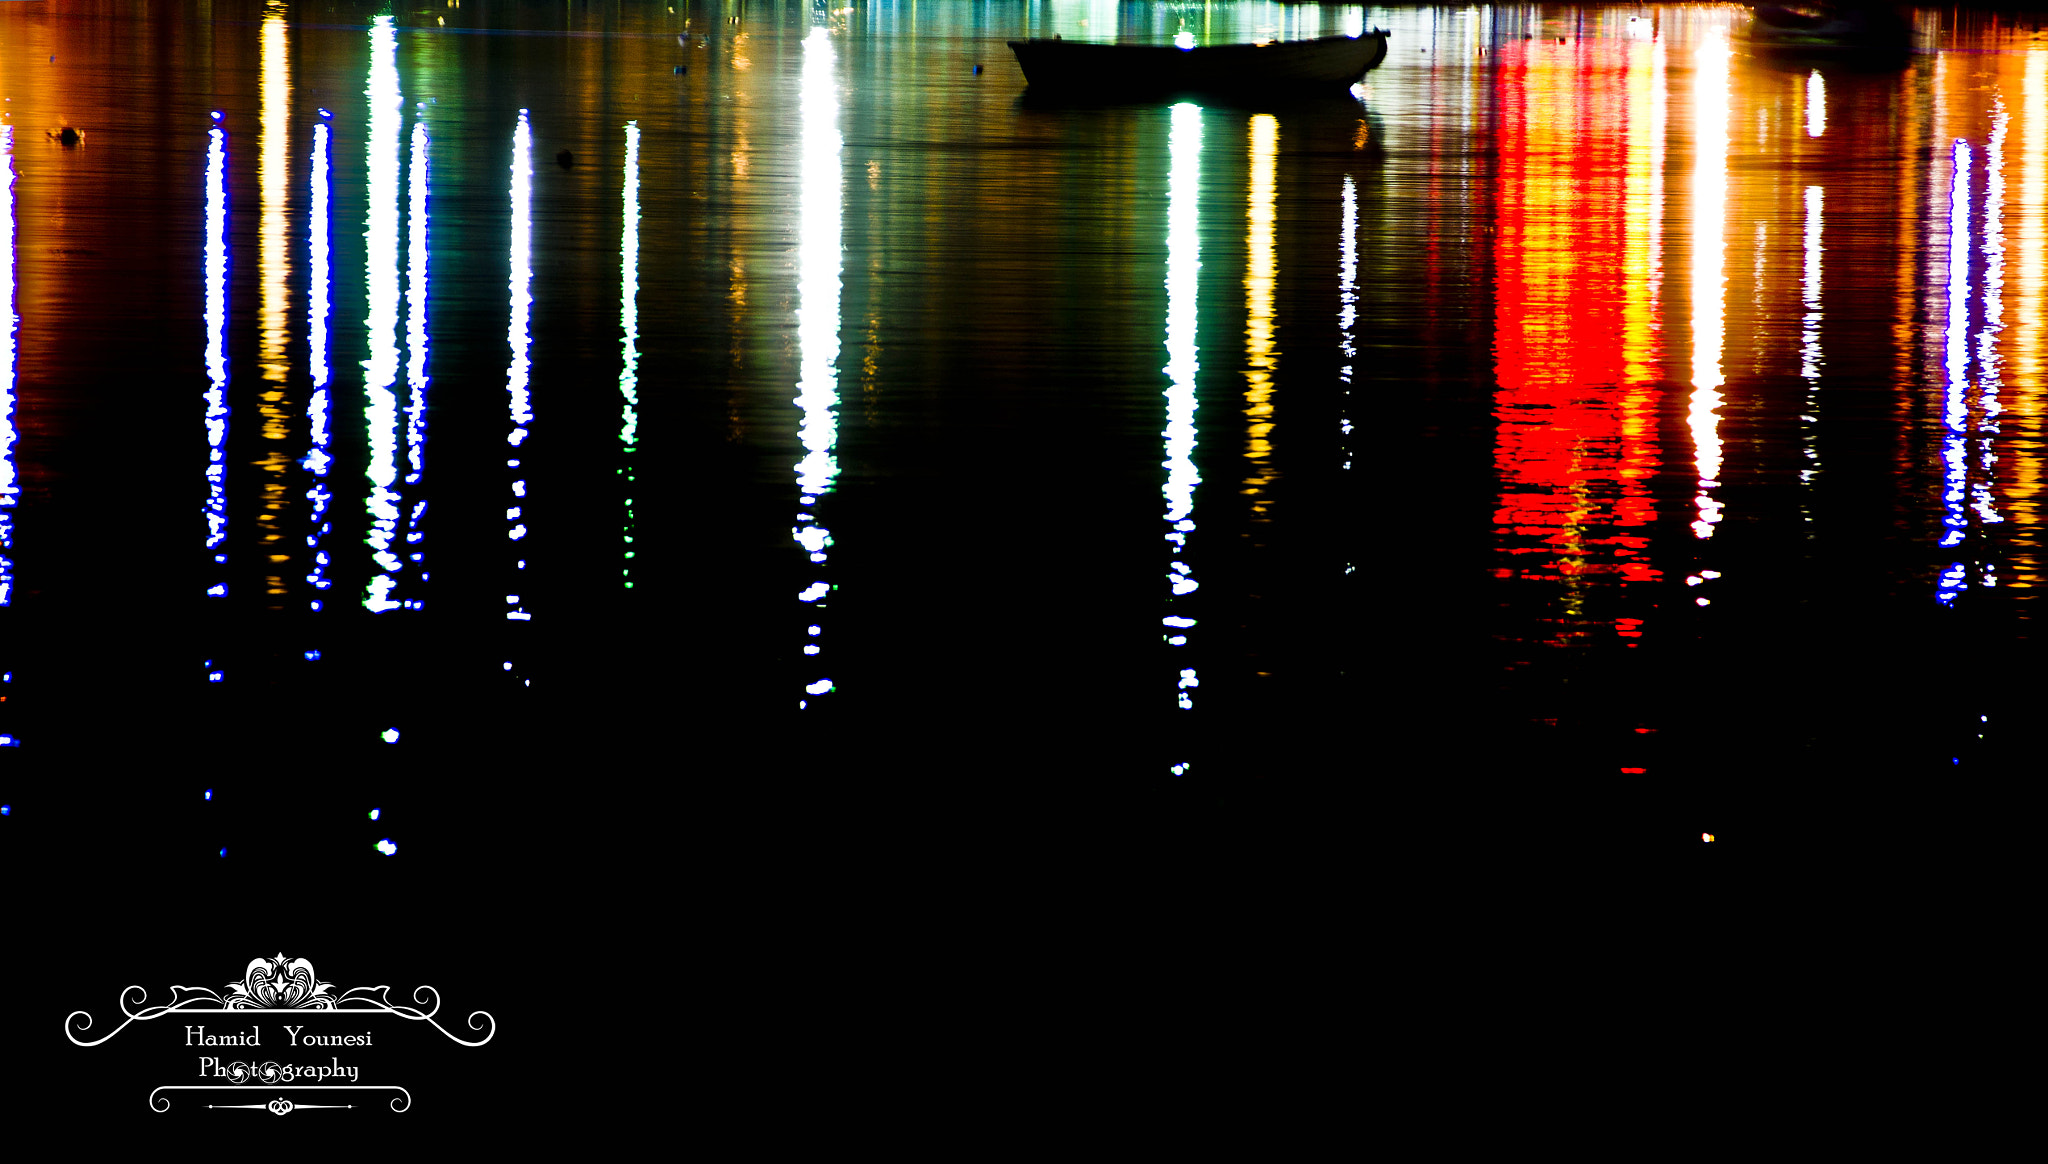 Photograph Light's Reflection by Hamid Younesi on 500px